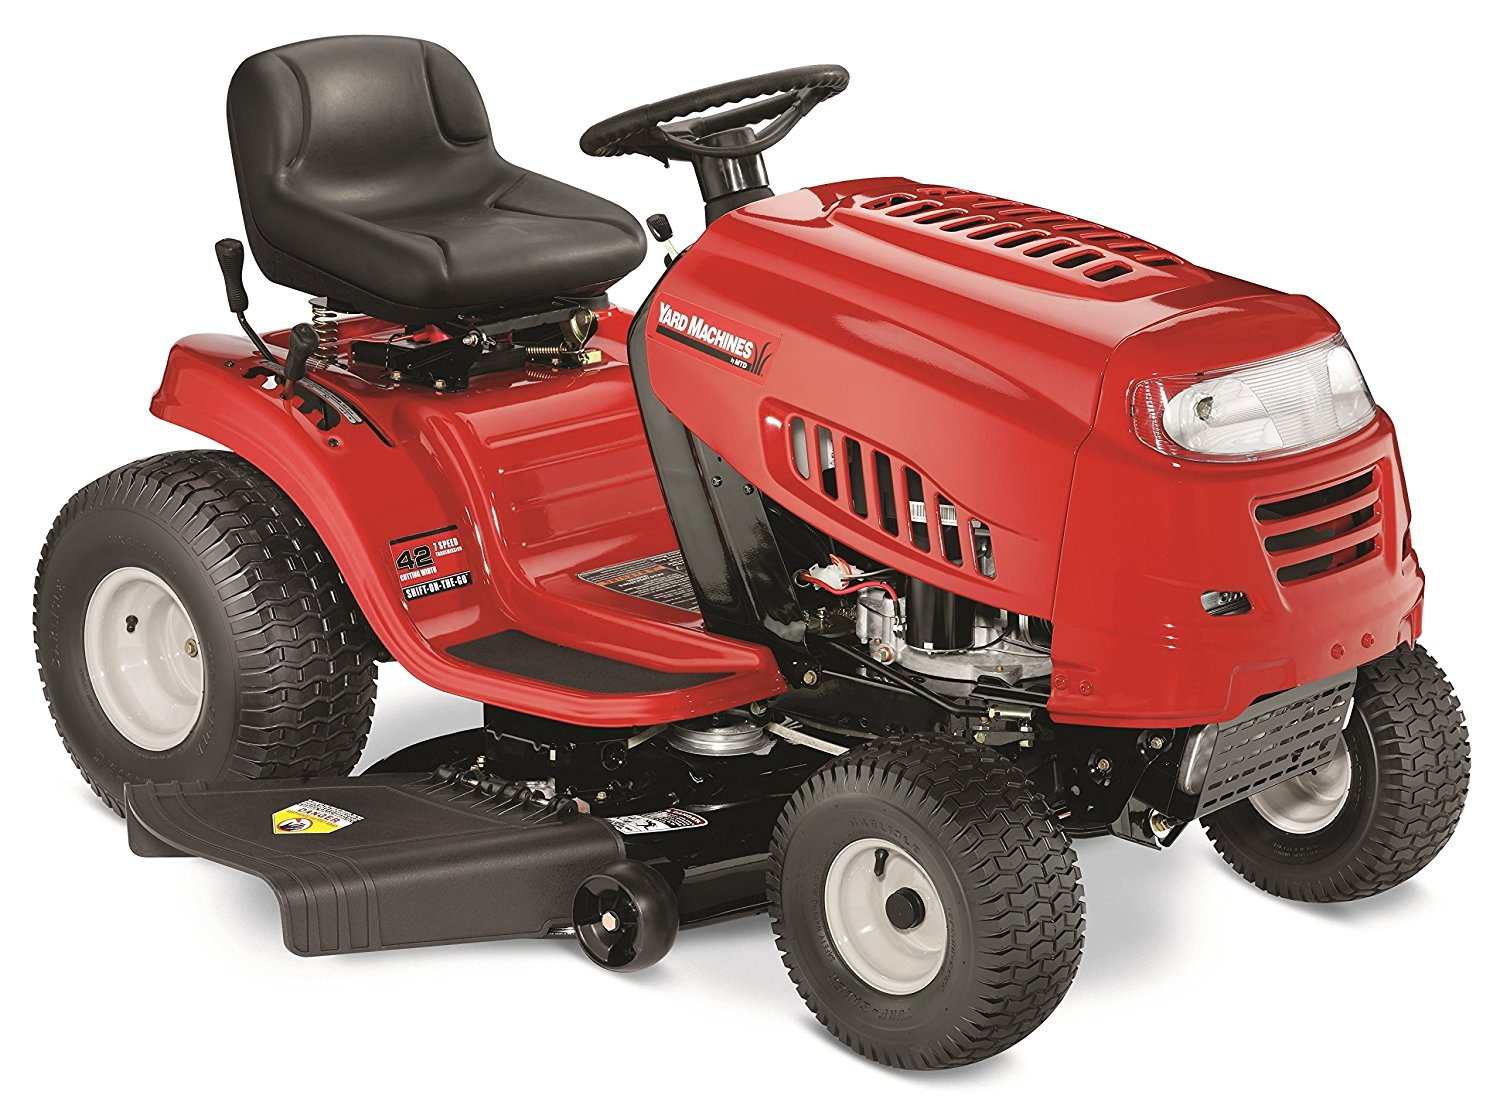 42-Inch Riding Lawn Mower